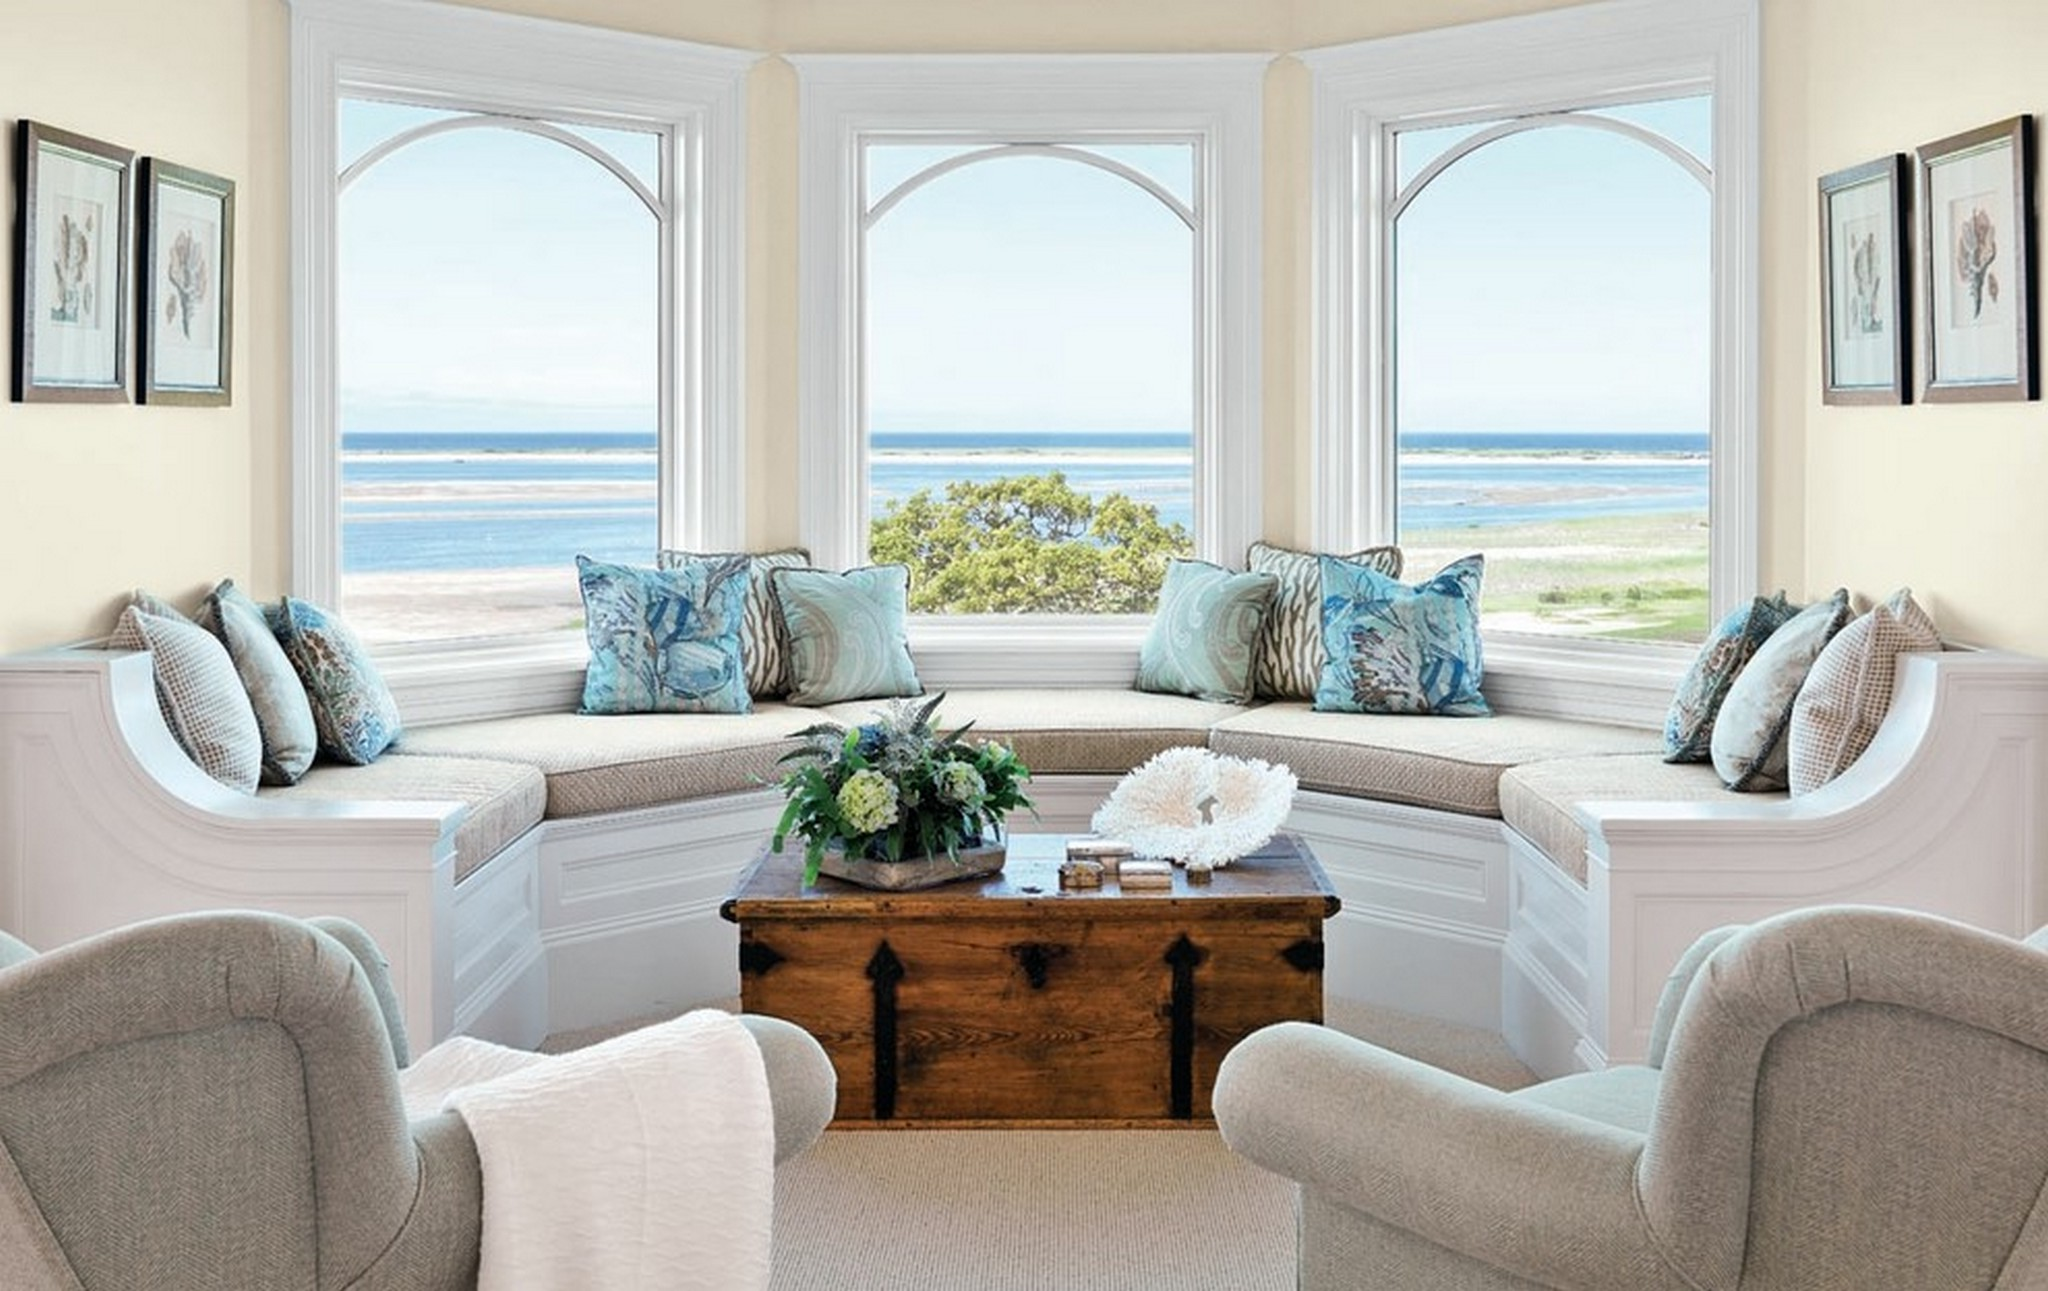 Beach Themed Coffee Table Decor | Roy Home Design